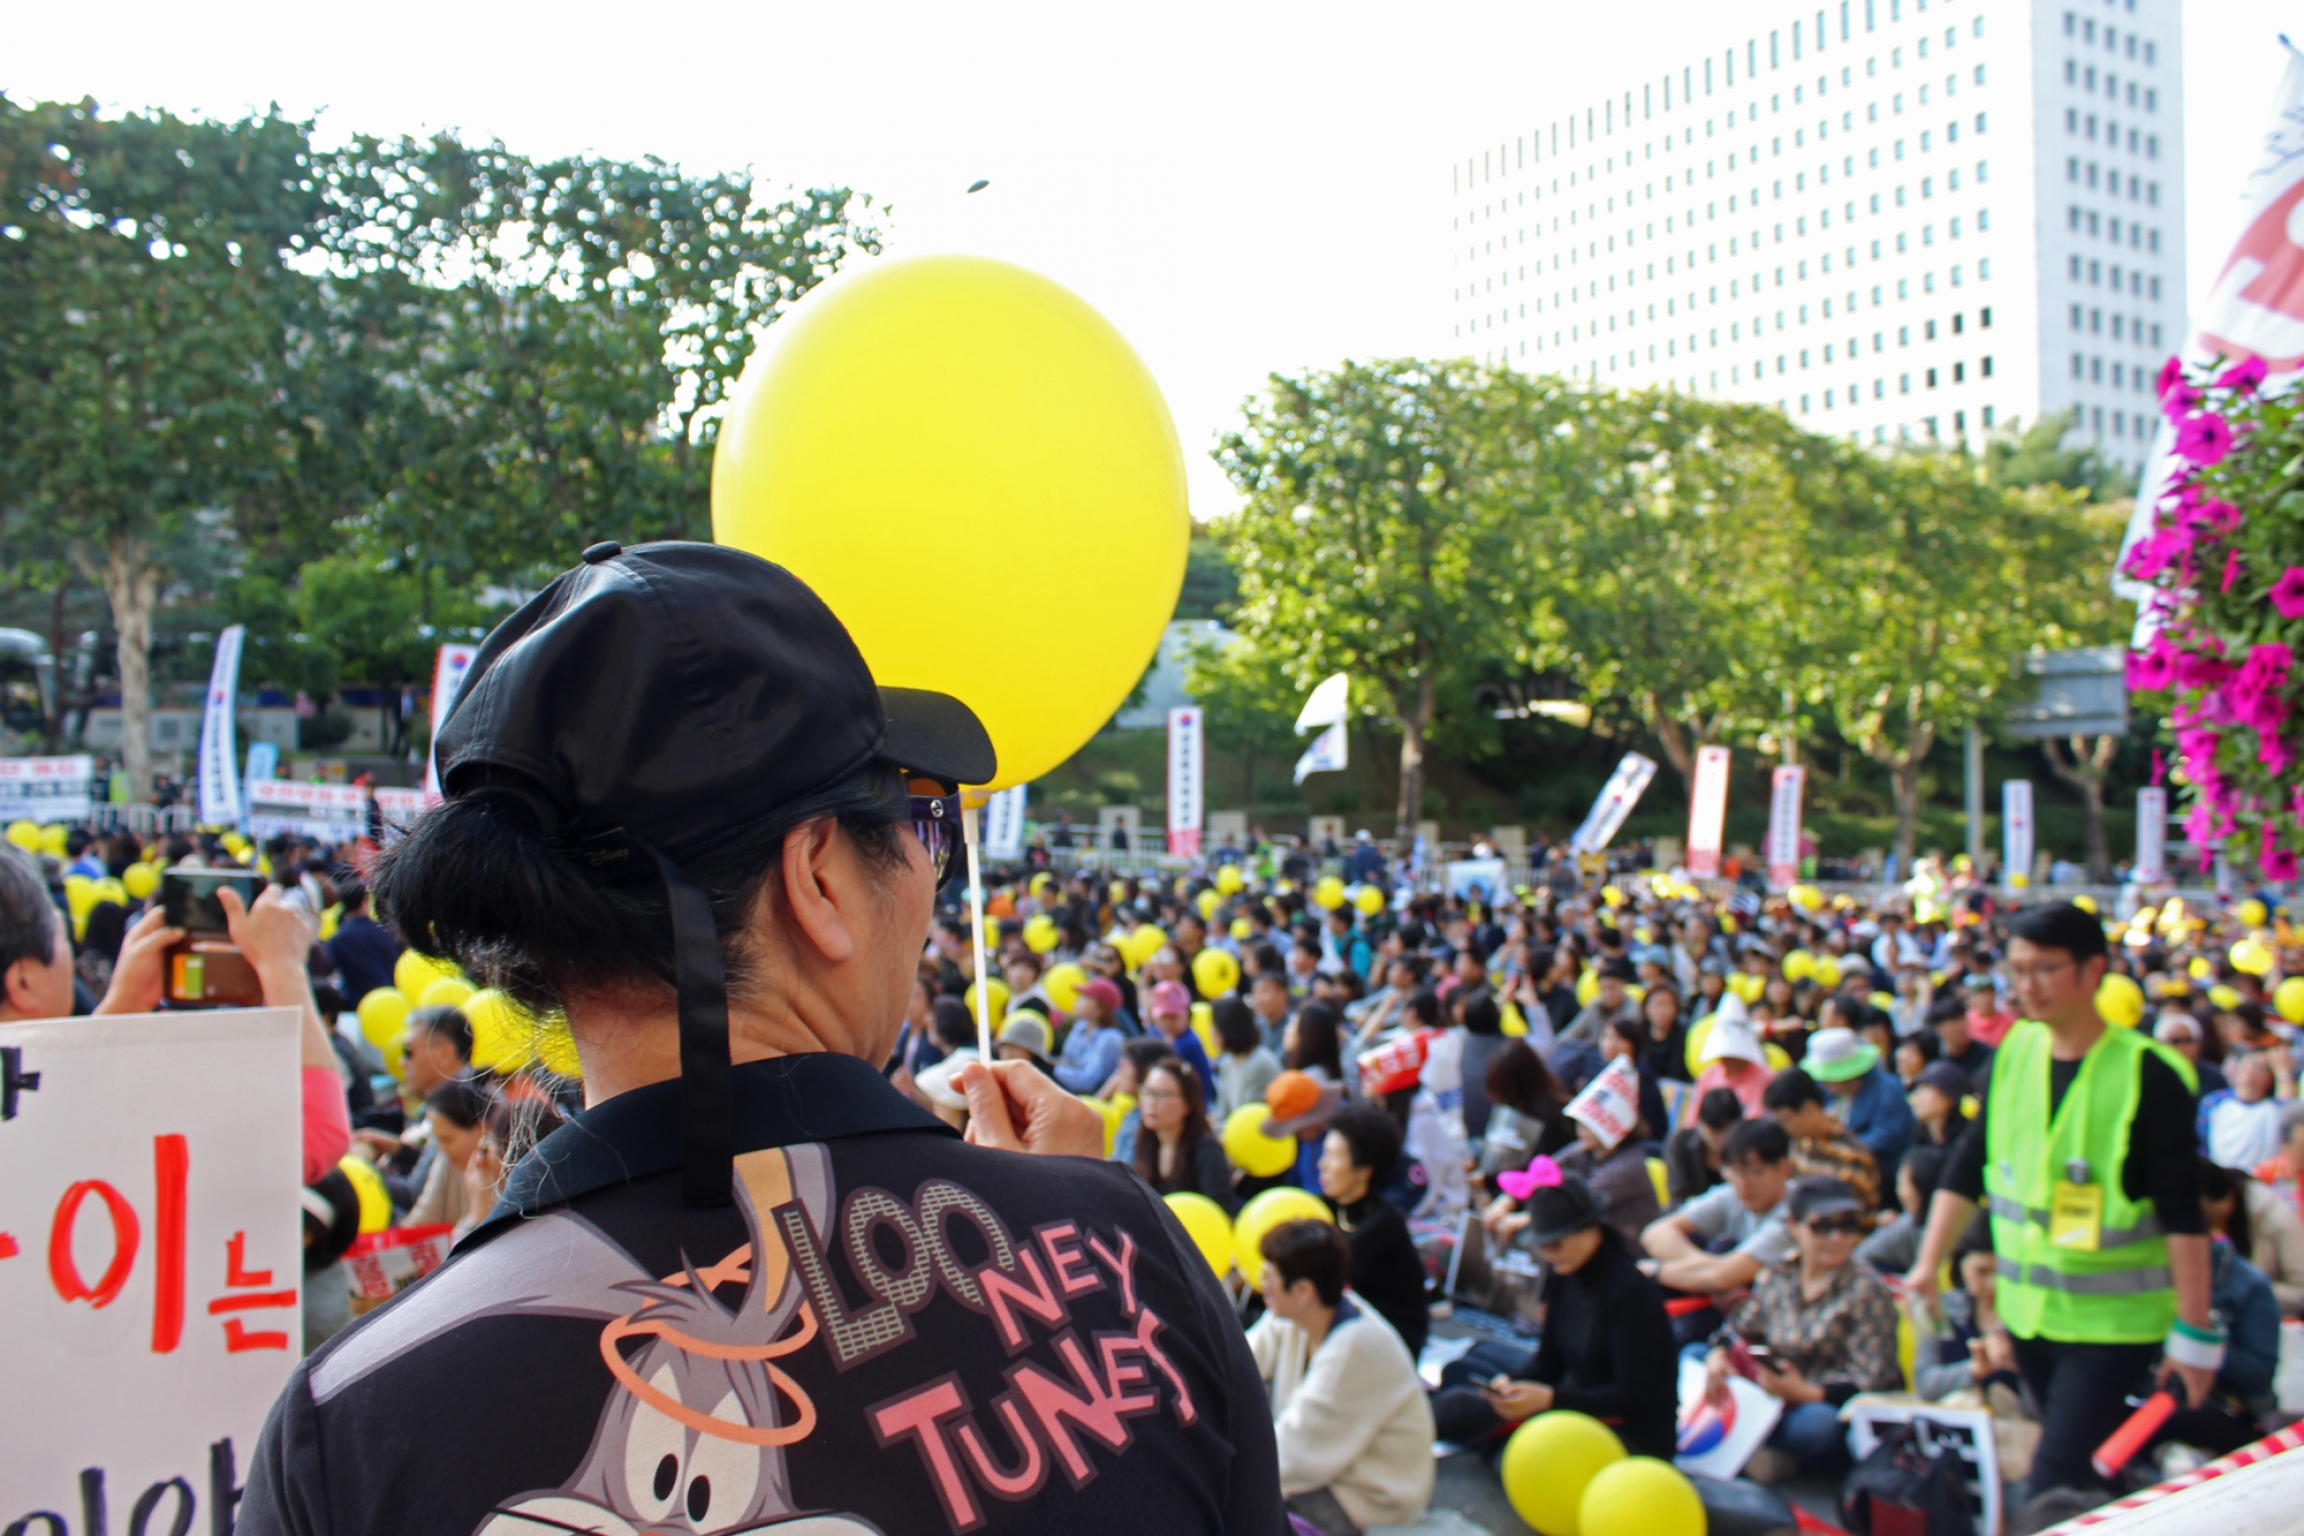 Protesters hold up signs in a protest in South Korea holding yellow balloons